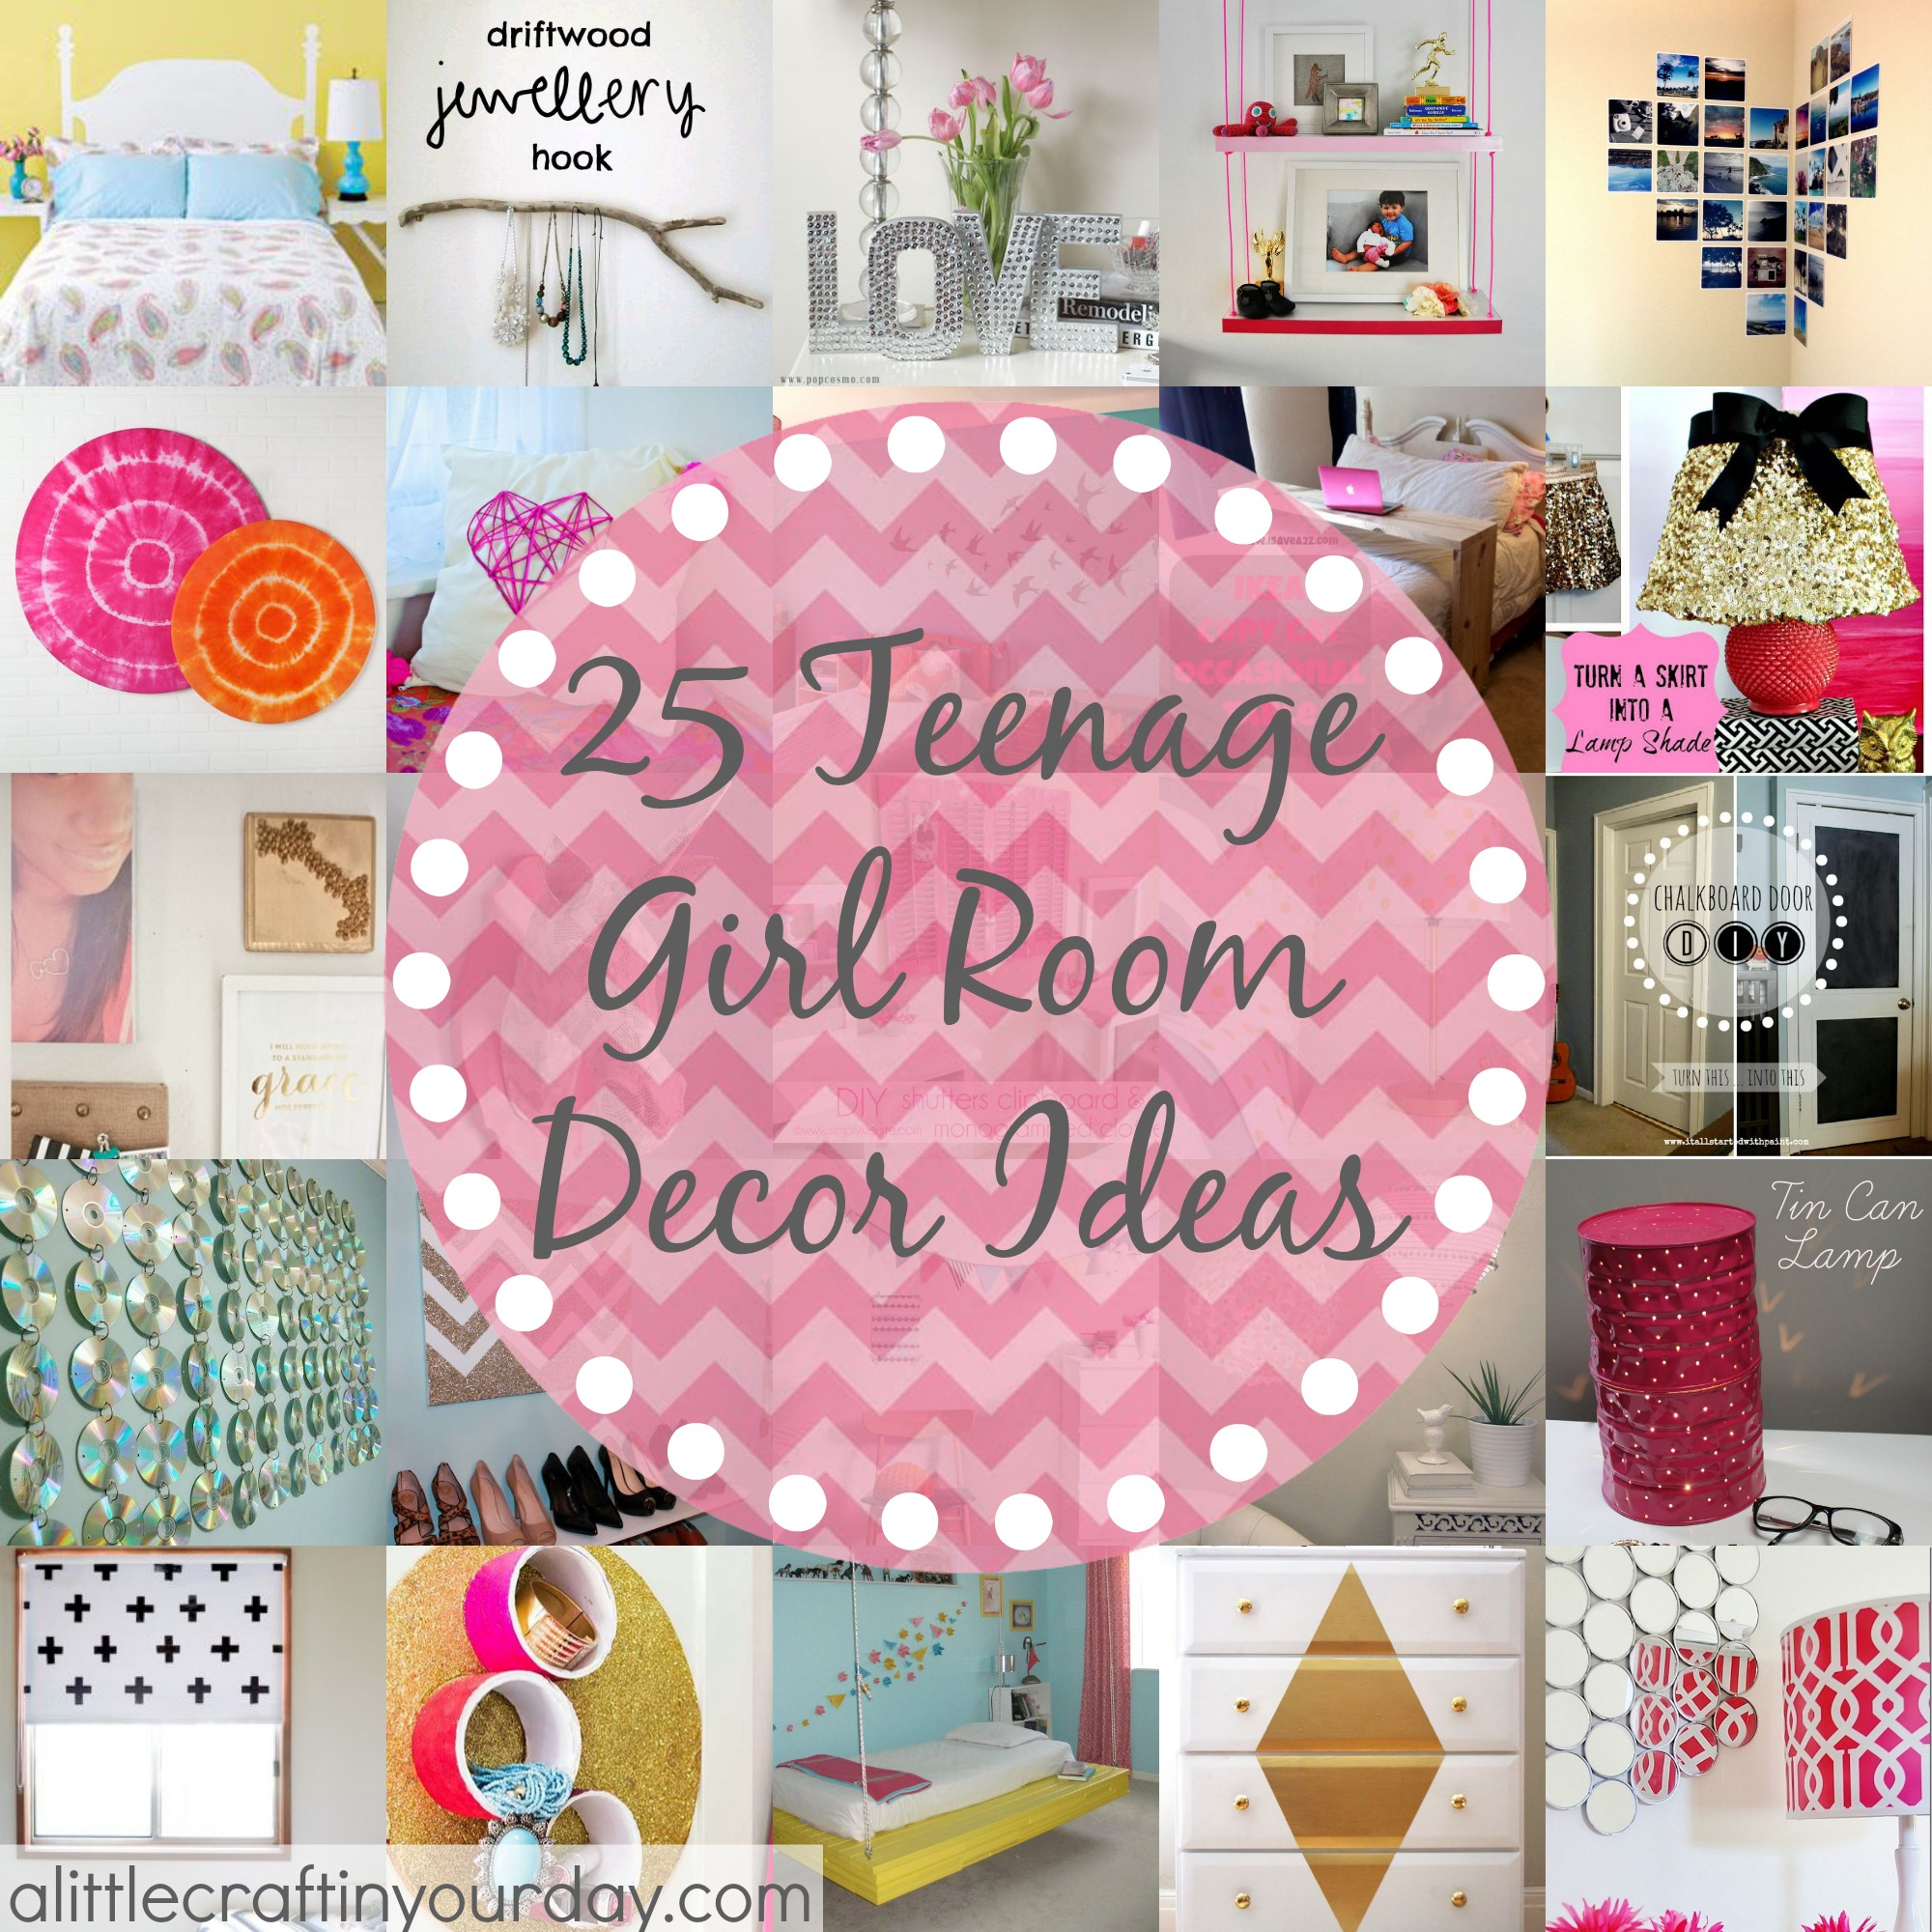 Homemade decoration ideas for girls bedrooms - 4 30 25 More Teenage Girl Room Decor Ideas